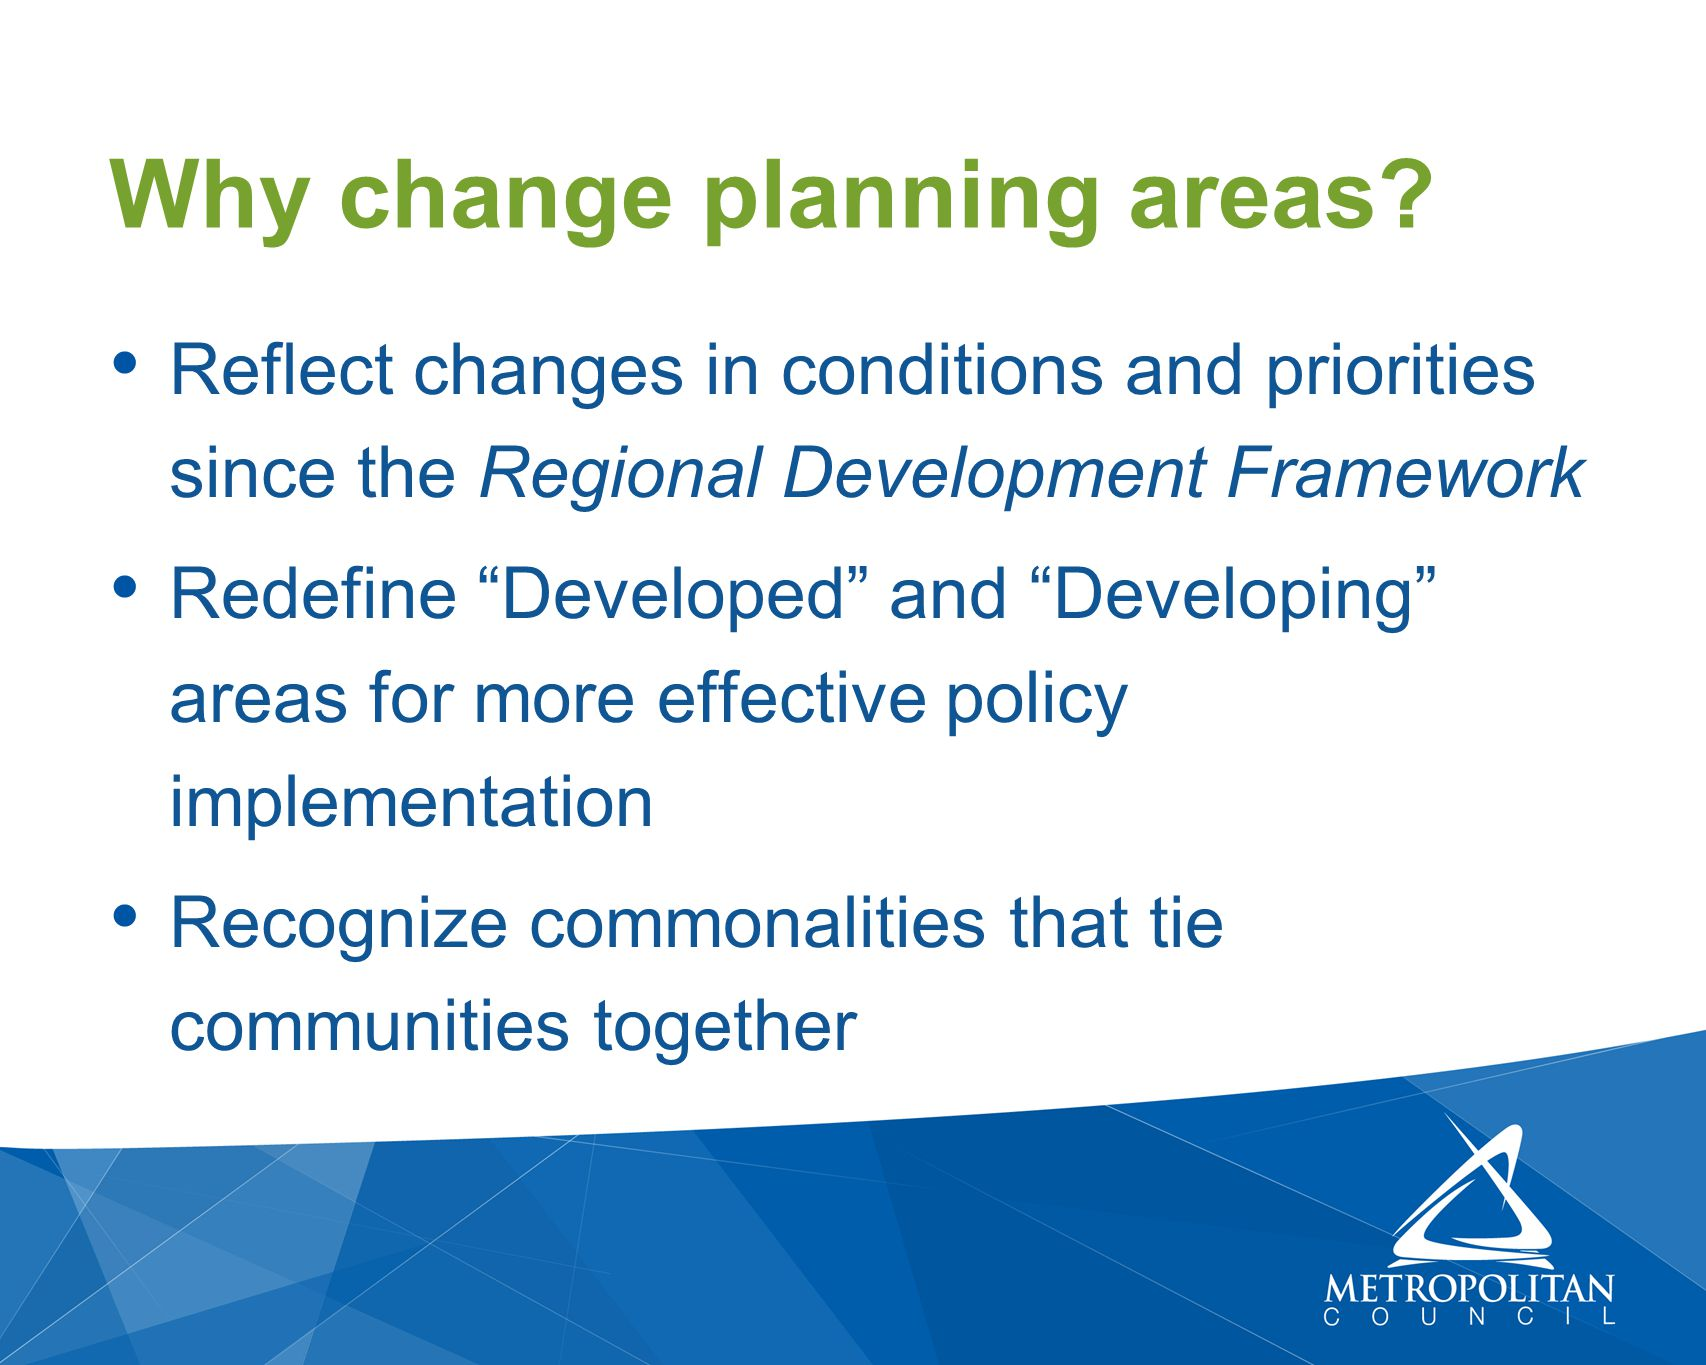 Reflect changes in conditions and priorities since the Regional Development Framework Redefine Developed and Developing areas for more effective policy implementation Recognize commonalities that tie communities together Why change planning areas